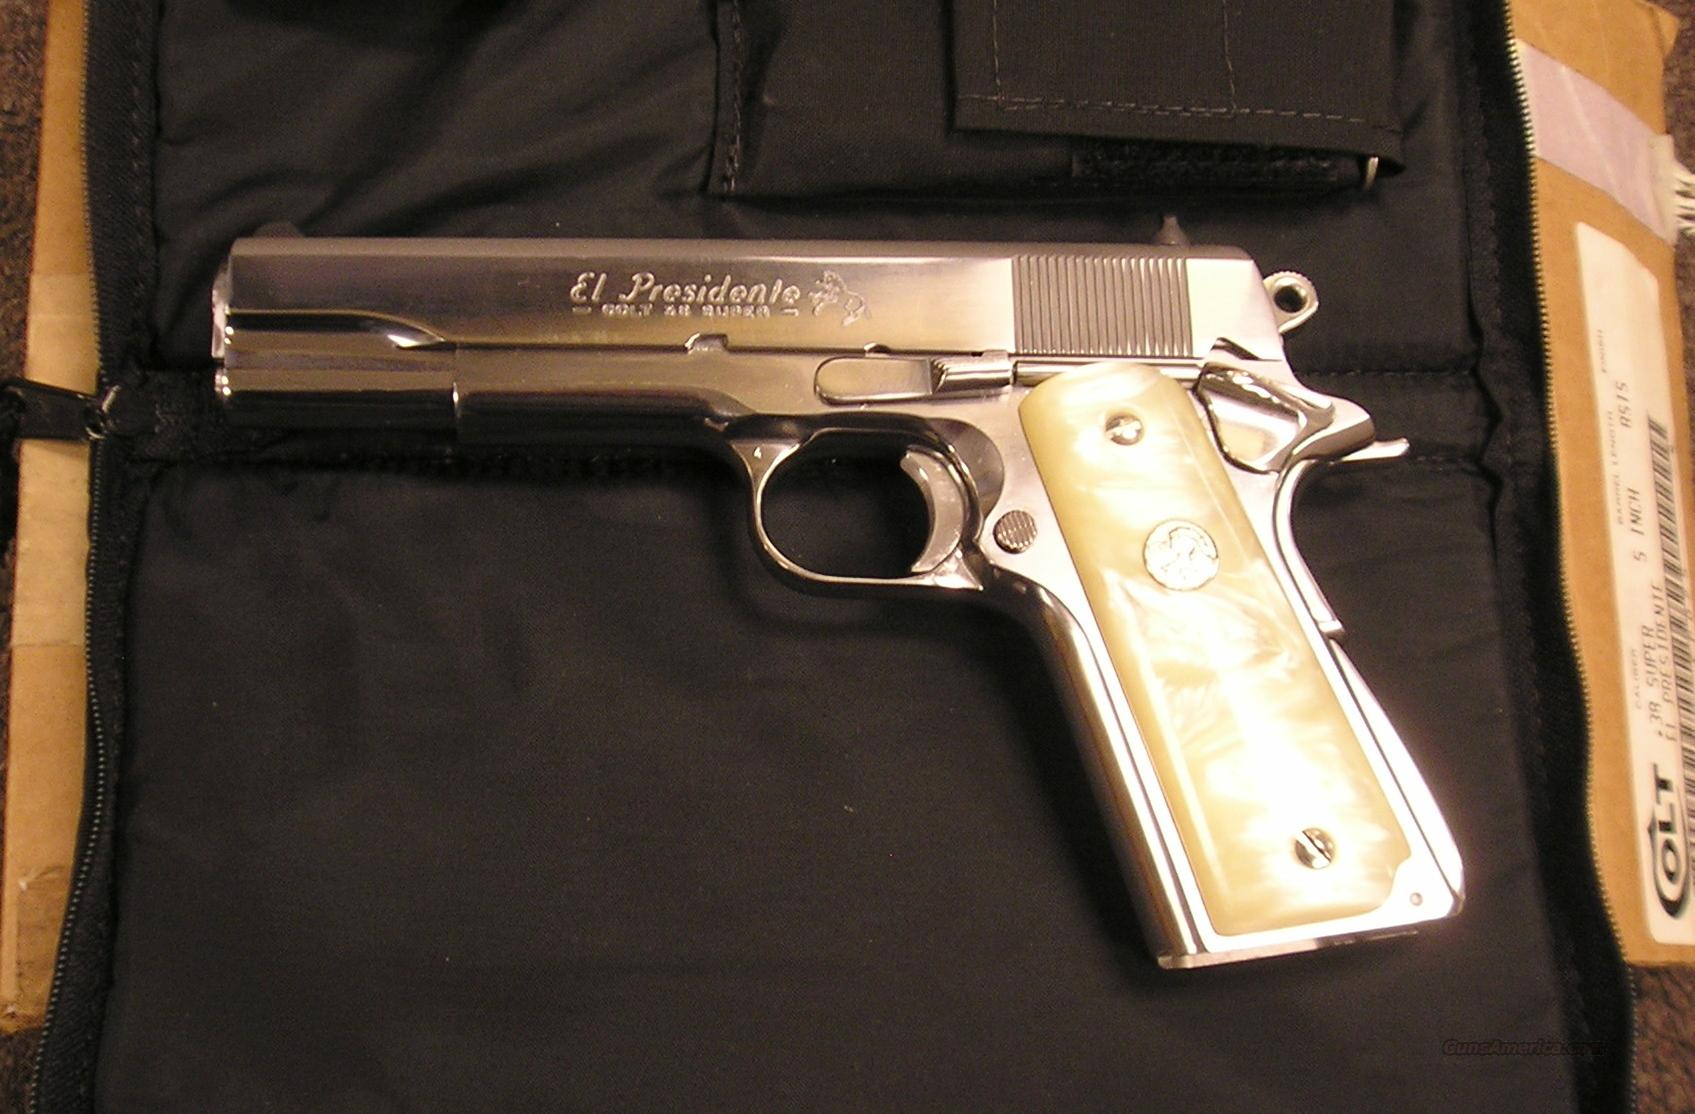 Colt EL PRESIDENTE 38 Super  Guns > Pistols > Colt Commemorative Pistols